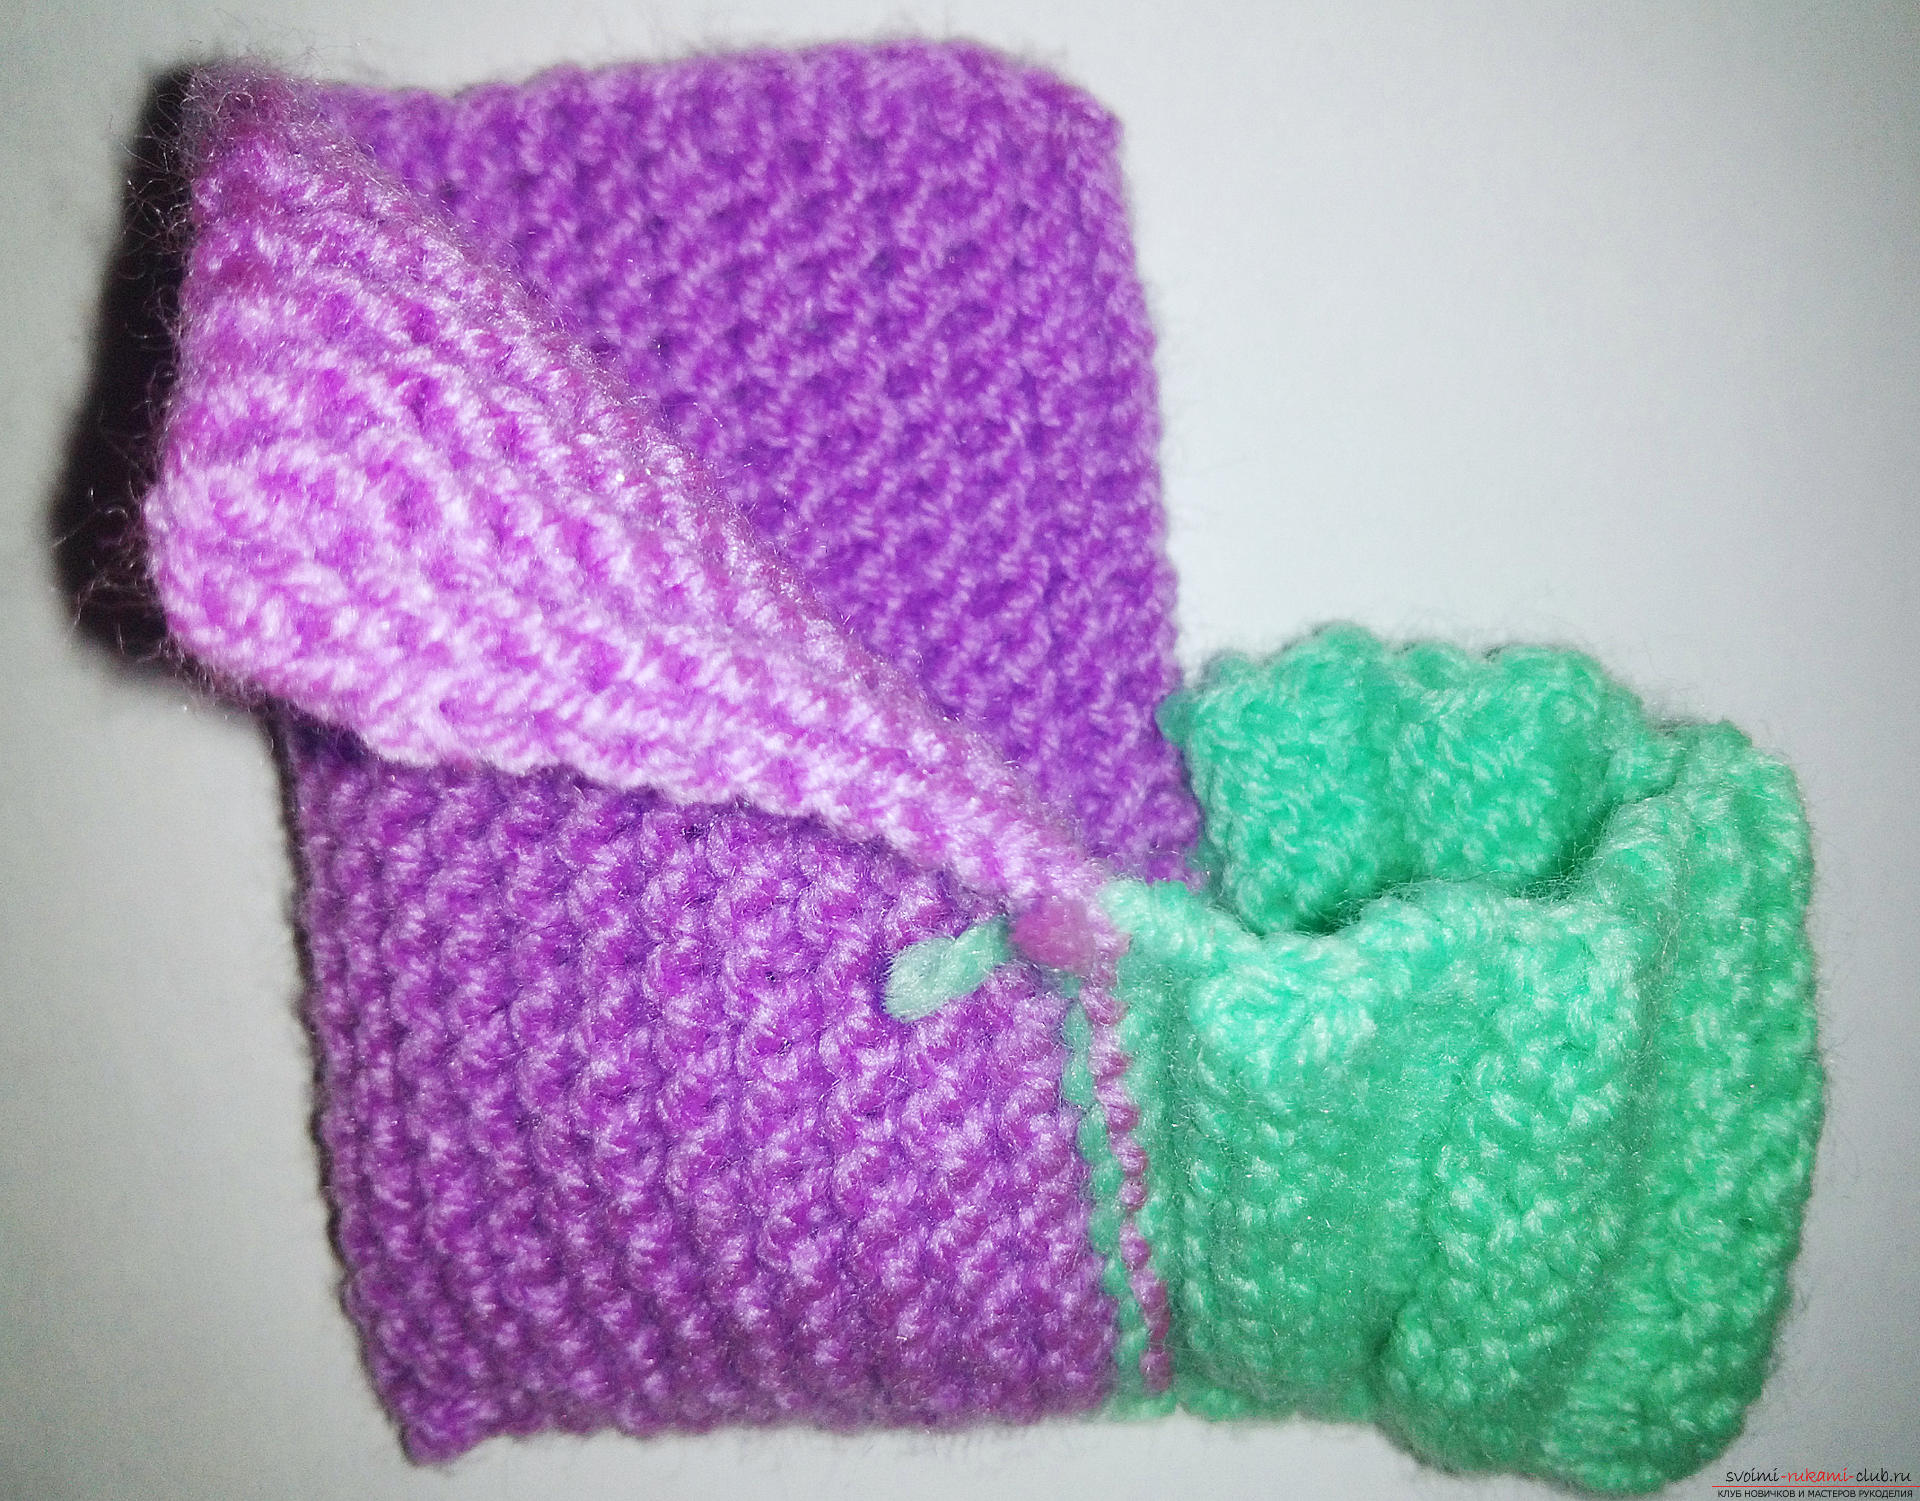 This master class with step-by-step photos and descriptions will teach you how to knit booties for newborns with knitting needles. Picture №10